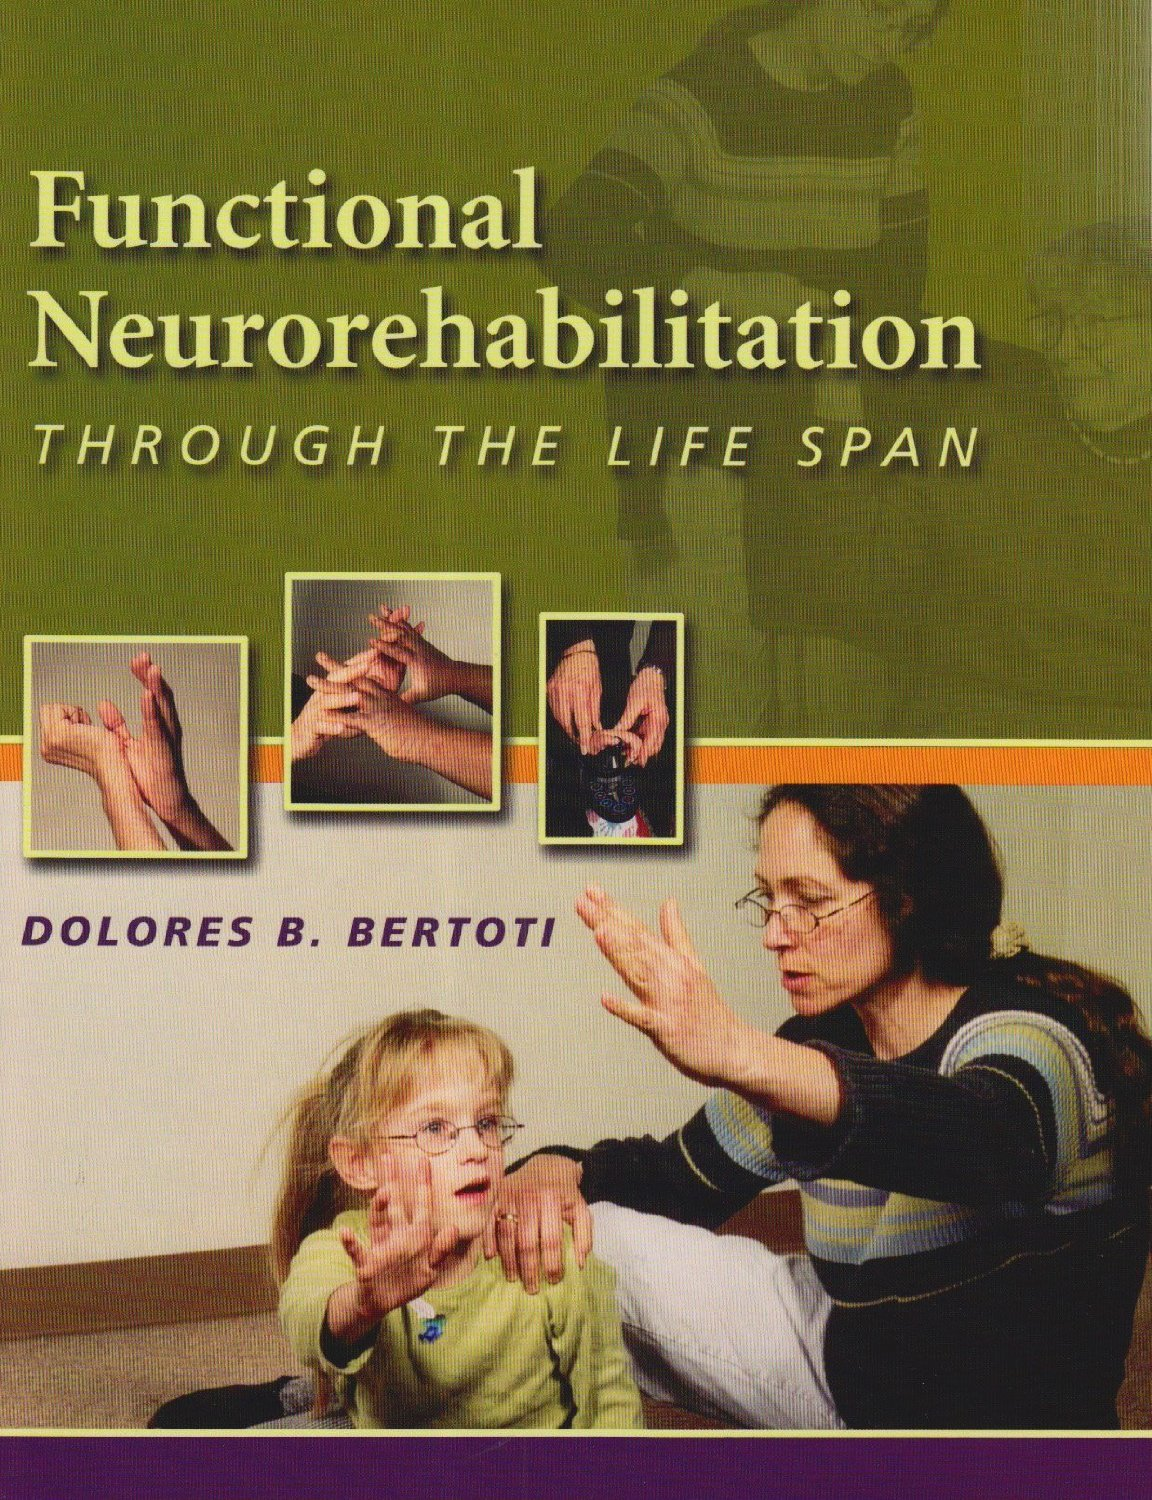 Functional Neurorehabilitation through the Life Span